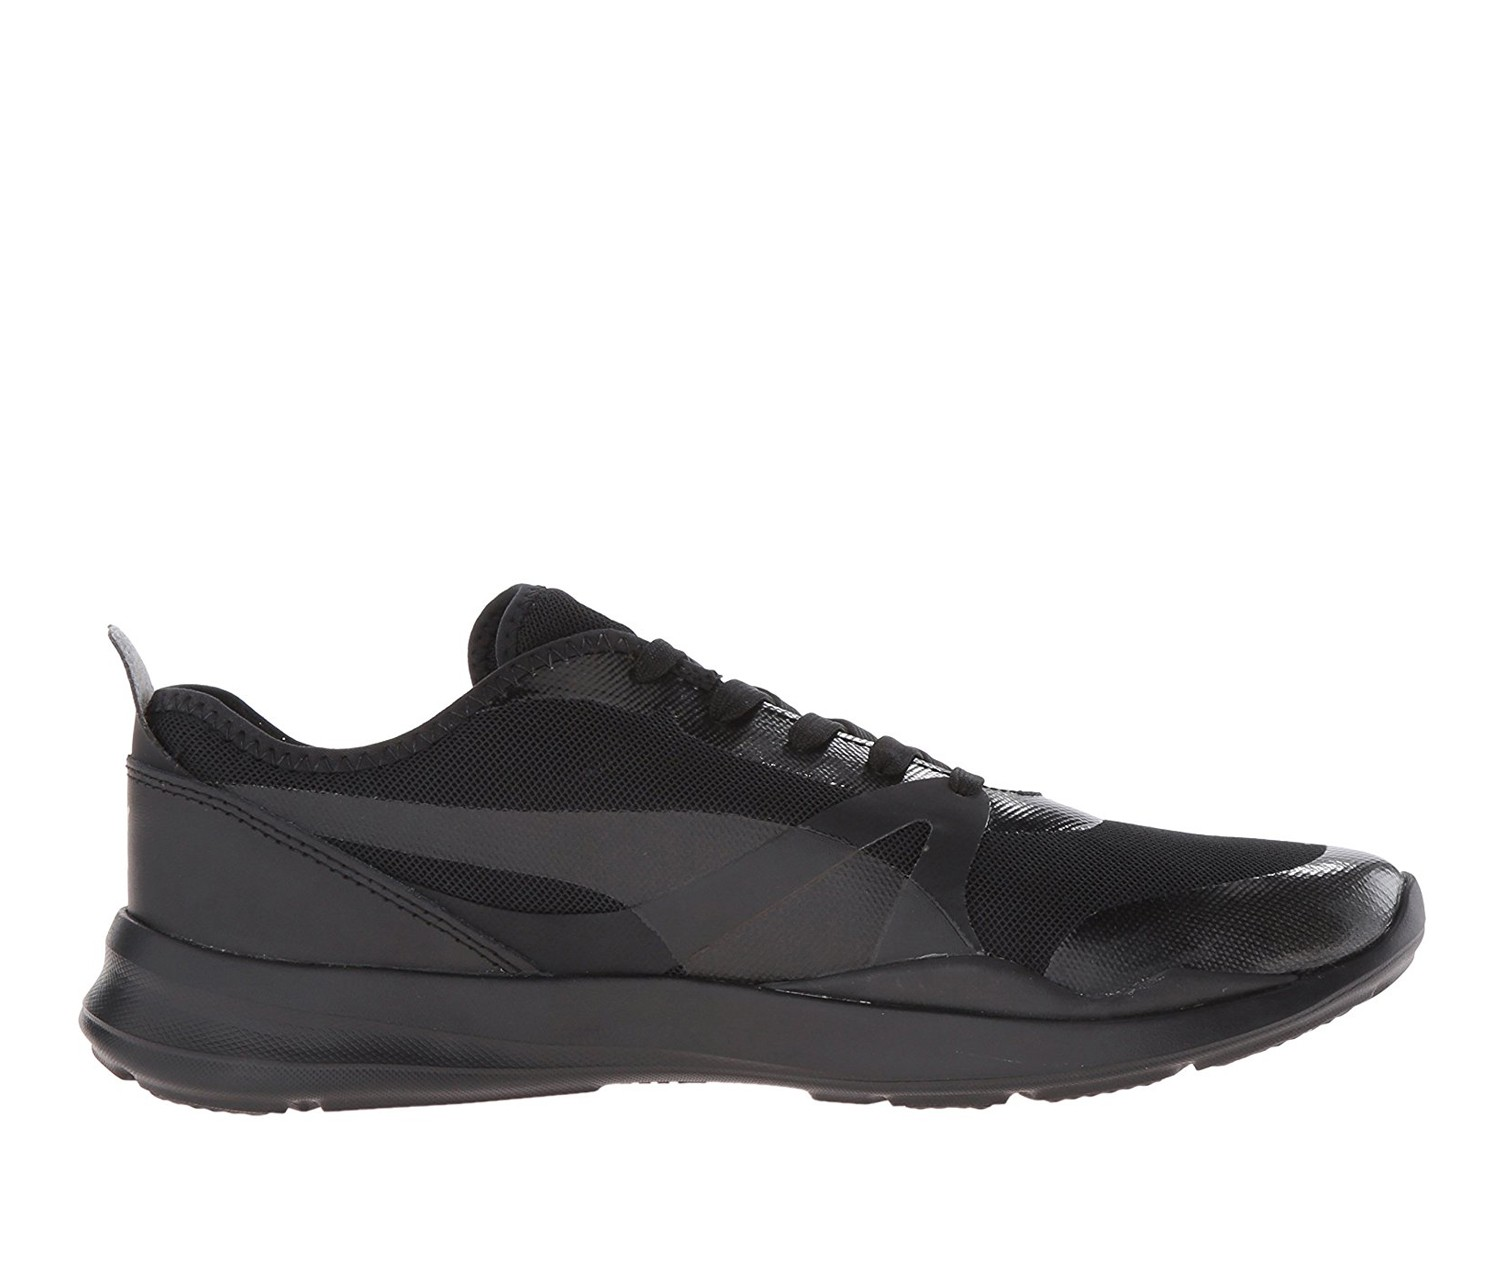 Duplex Evo SP Wn s Puma Black-